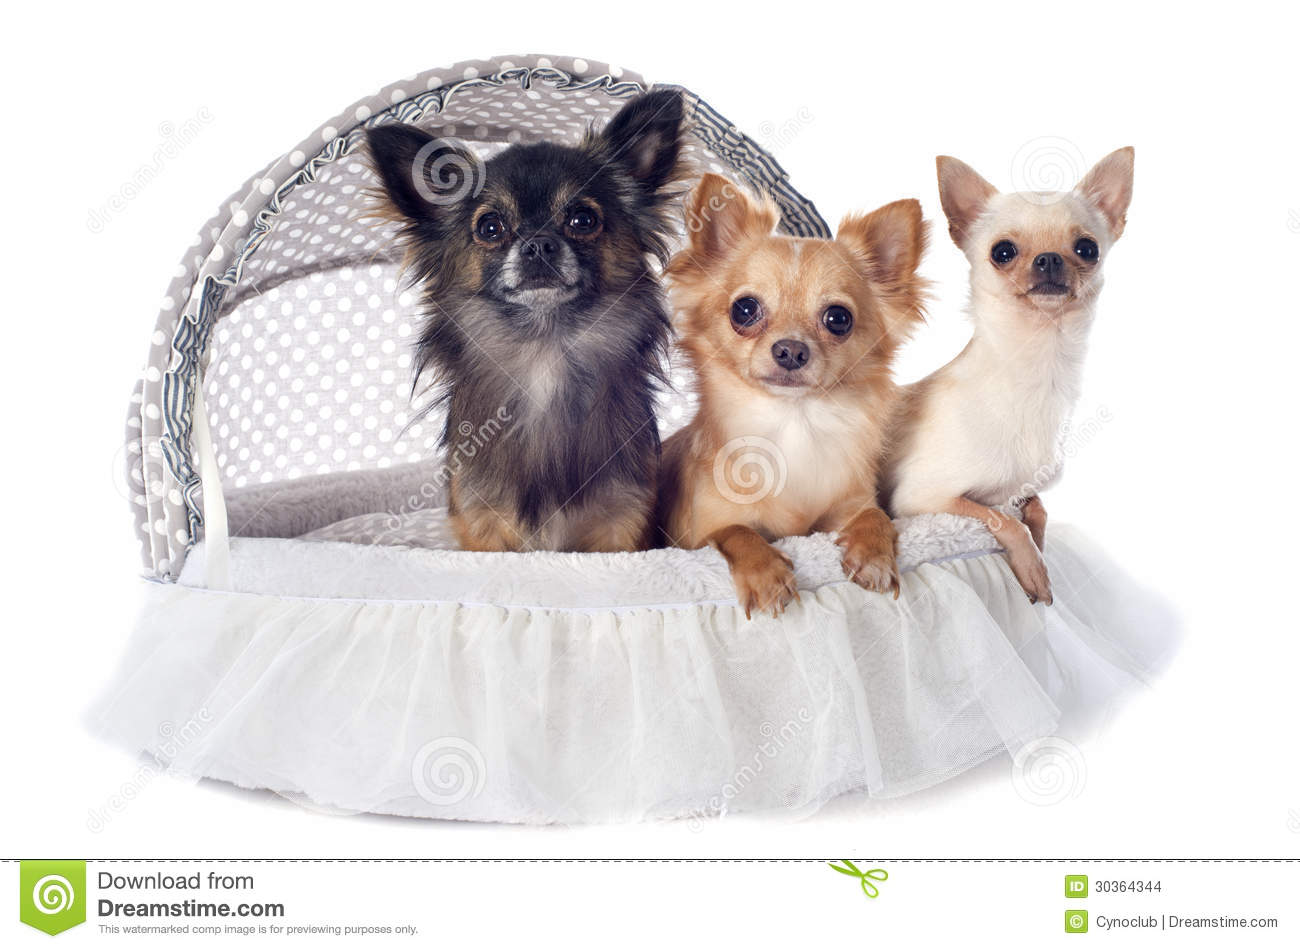 Puppy Chihuahua Stock Images Image 30364344 : puppy chihuahua portrait cute purebred front white background 30364344 from dreamstime.com size 1300 x 949 jpeg 109kB